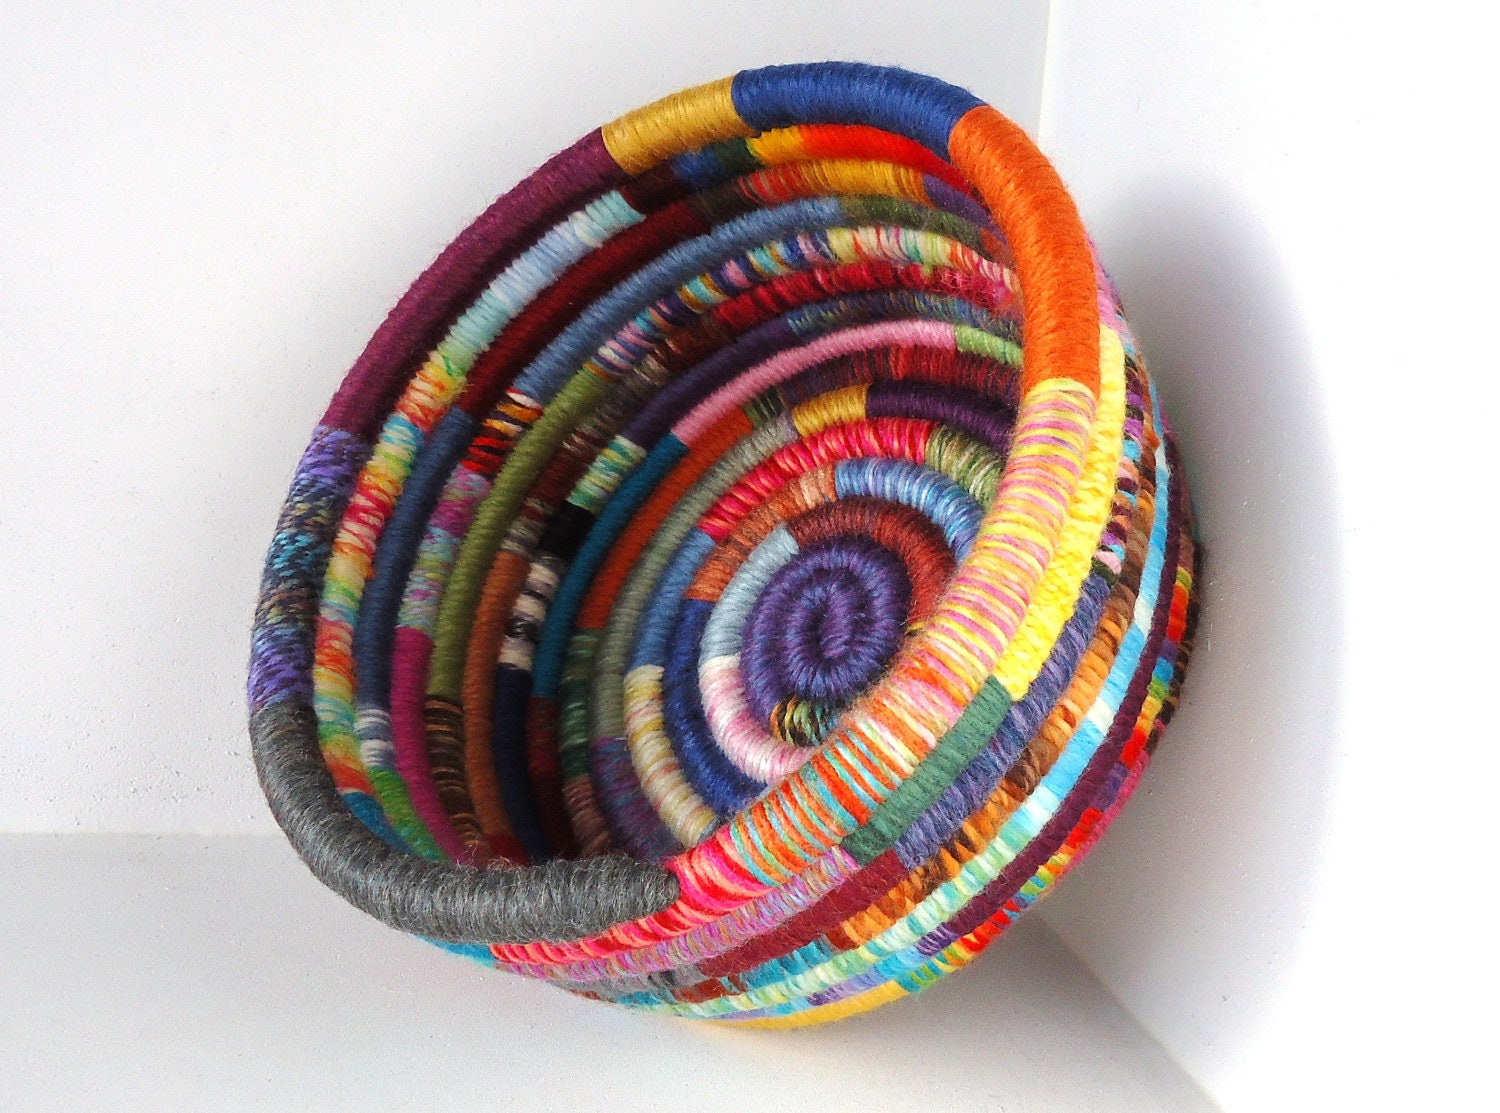 Handmade Basket Colorful Yarn Coiled Basket Multicolored